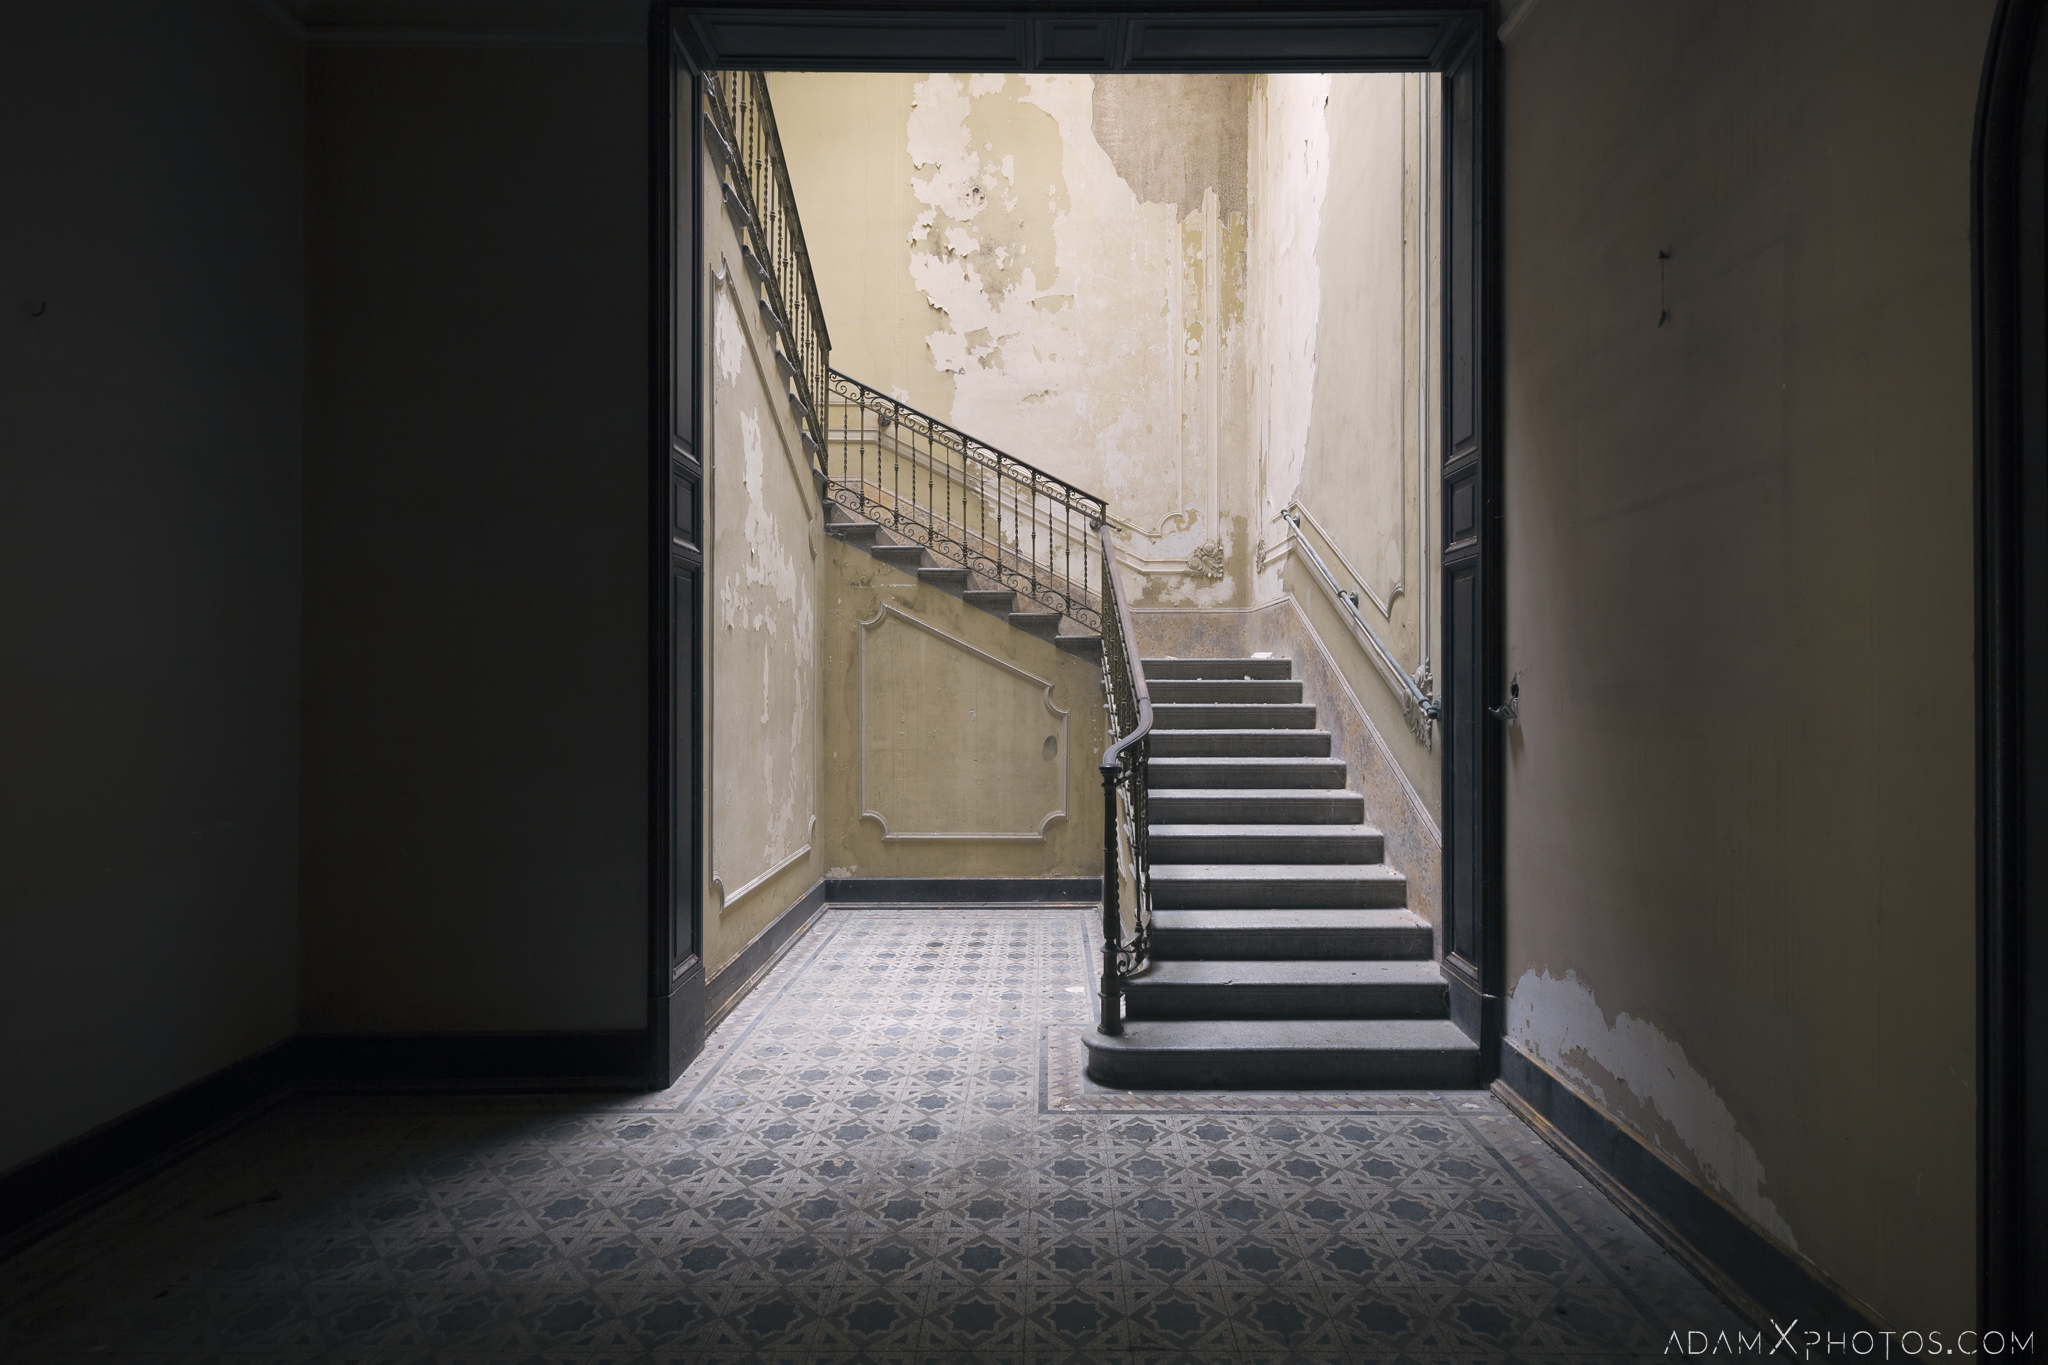 Hallway light shadow stairs staircase Villa Pesenti P Urbex Adam X Urban Exploration Italy Italia Access 2016 Abandoned decay lost forgotten derelict location creepy haunting eerie